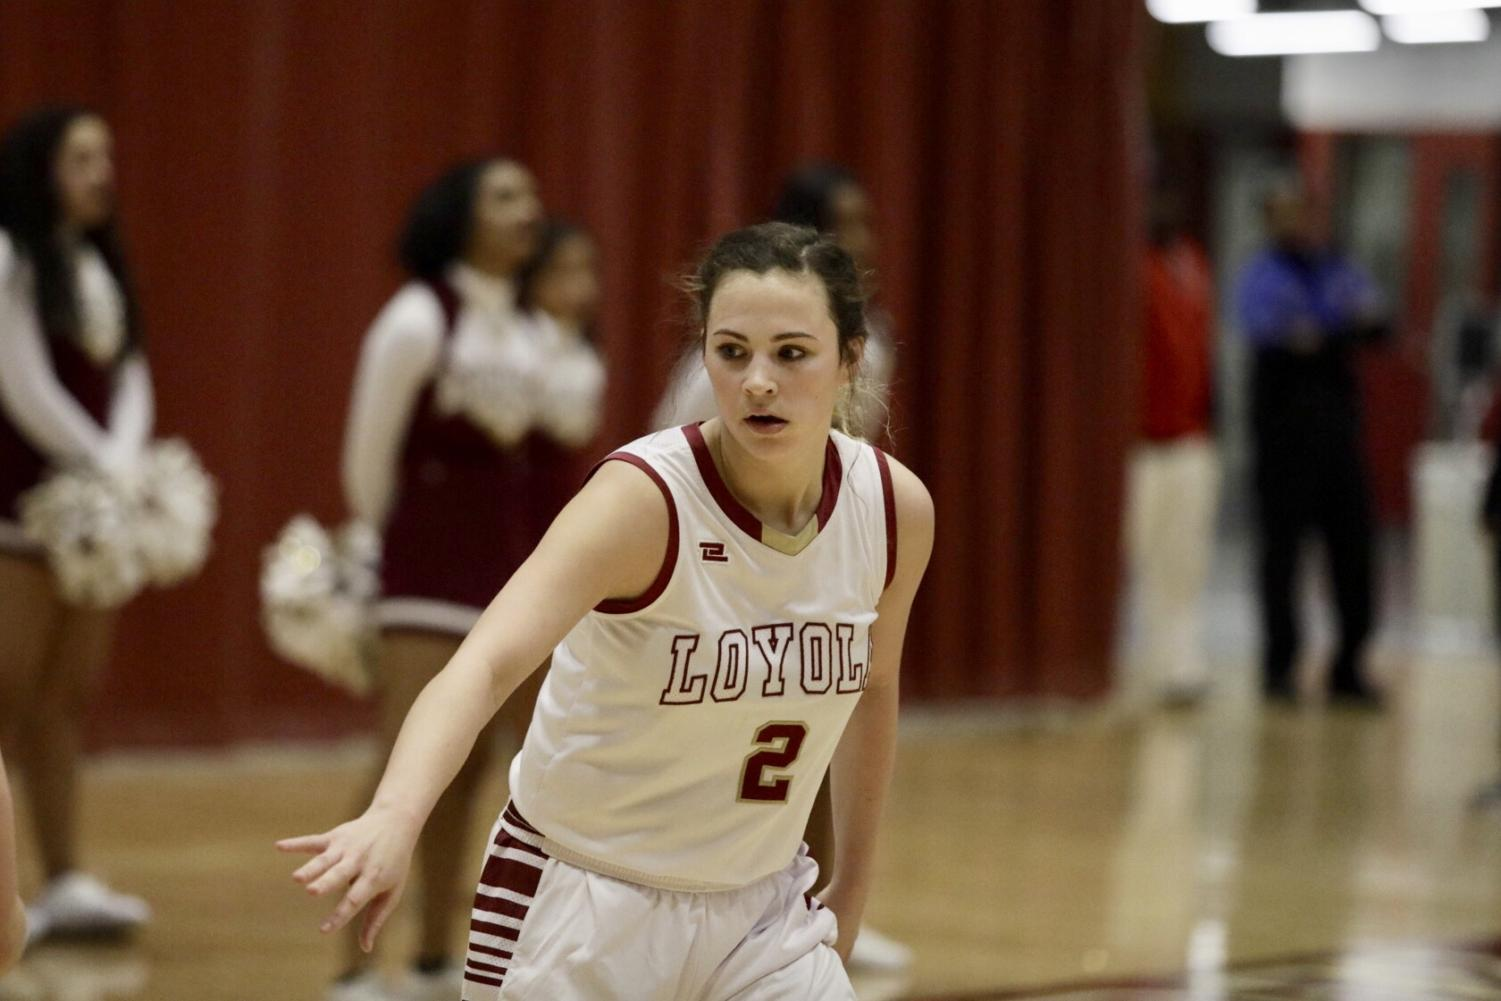 Mathematics sophomore Presley scored a career-best in both points and three-pointers. She scored 22 points with six three balls to go along with two rebounds, two assists and a steal while coming off the bench. Photo credit: Andres Fuentes